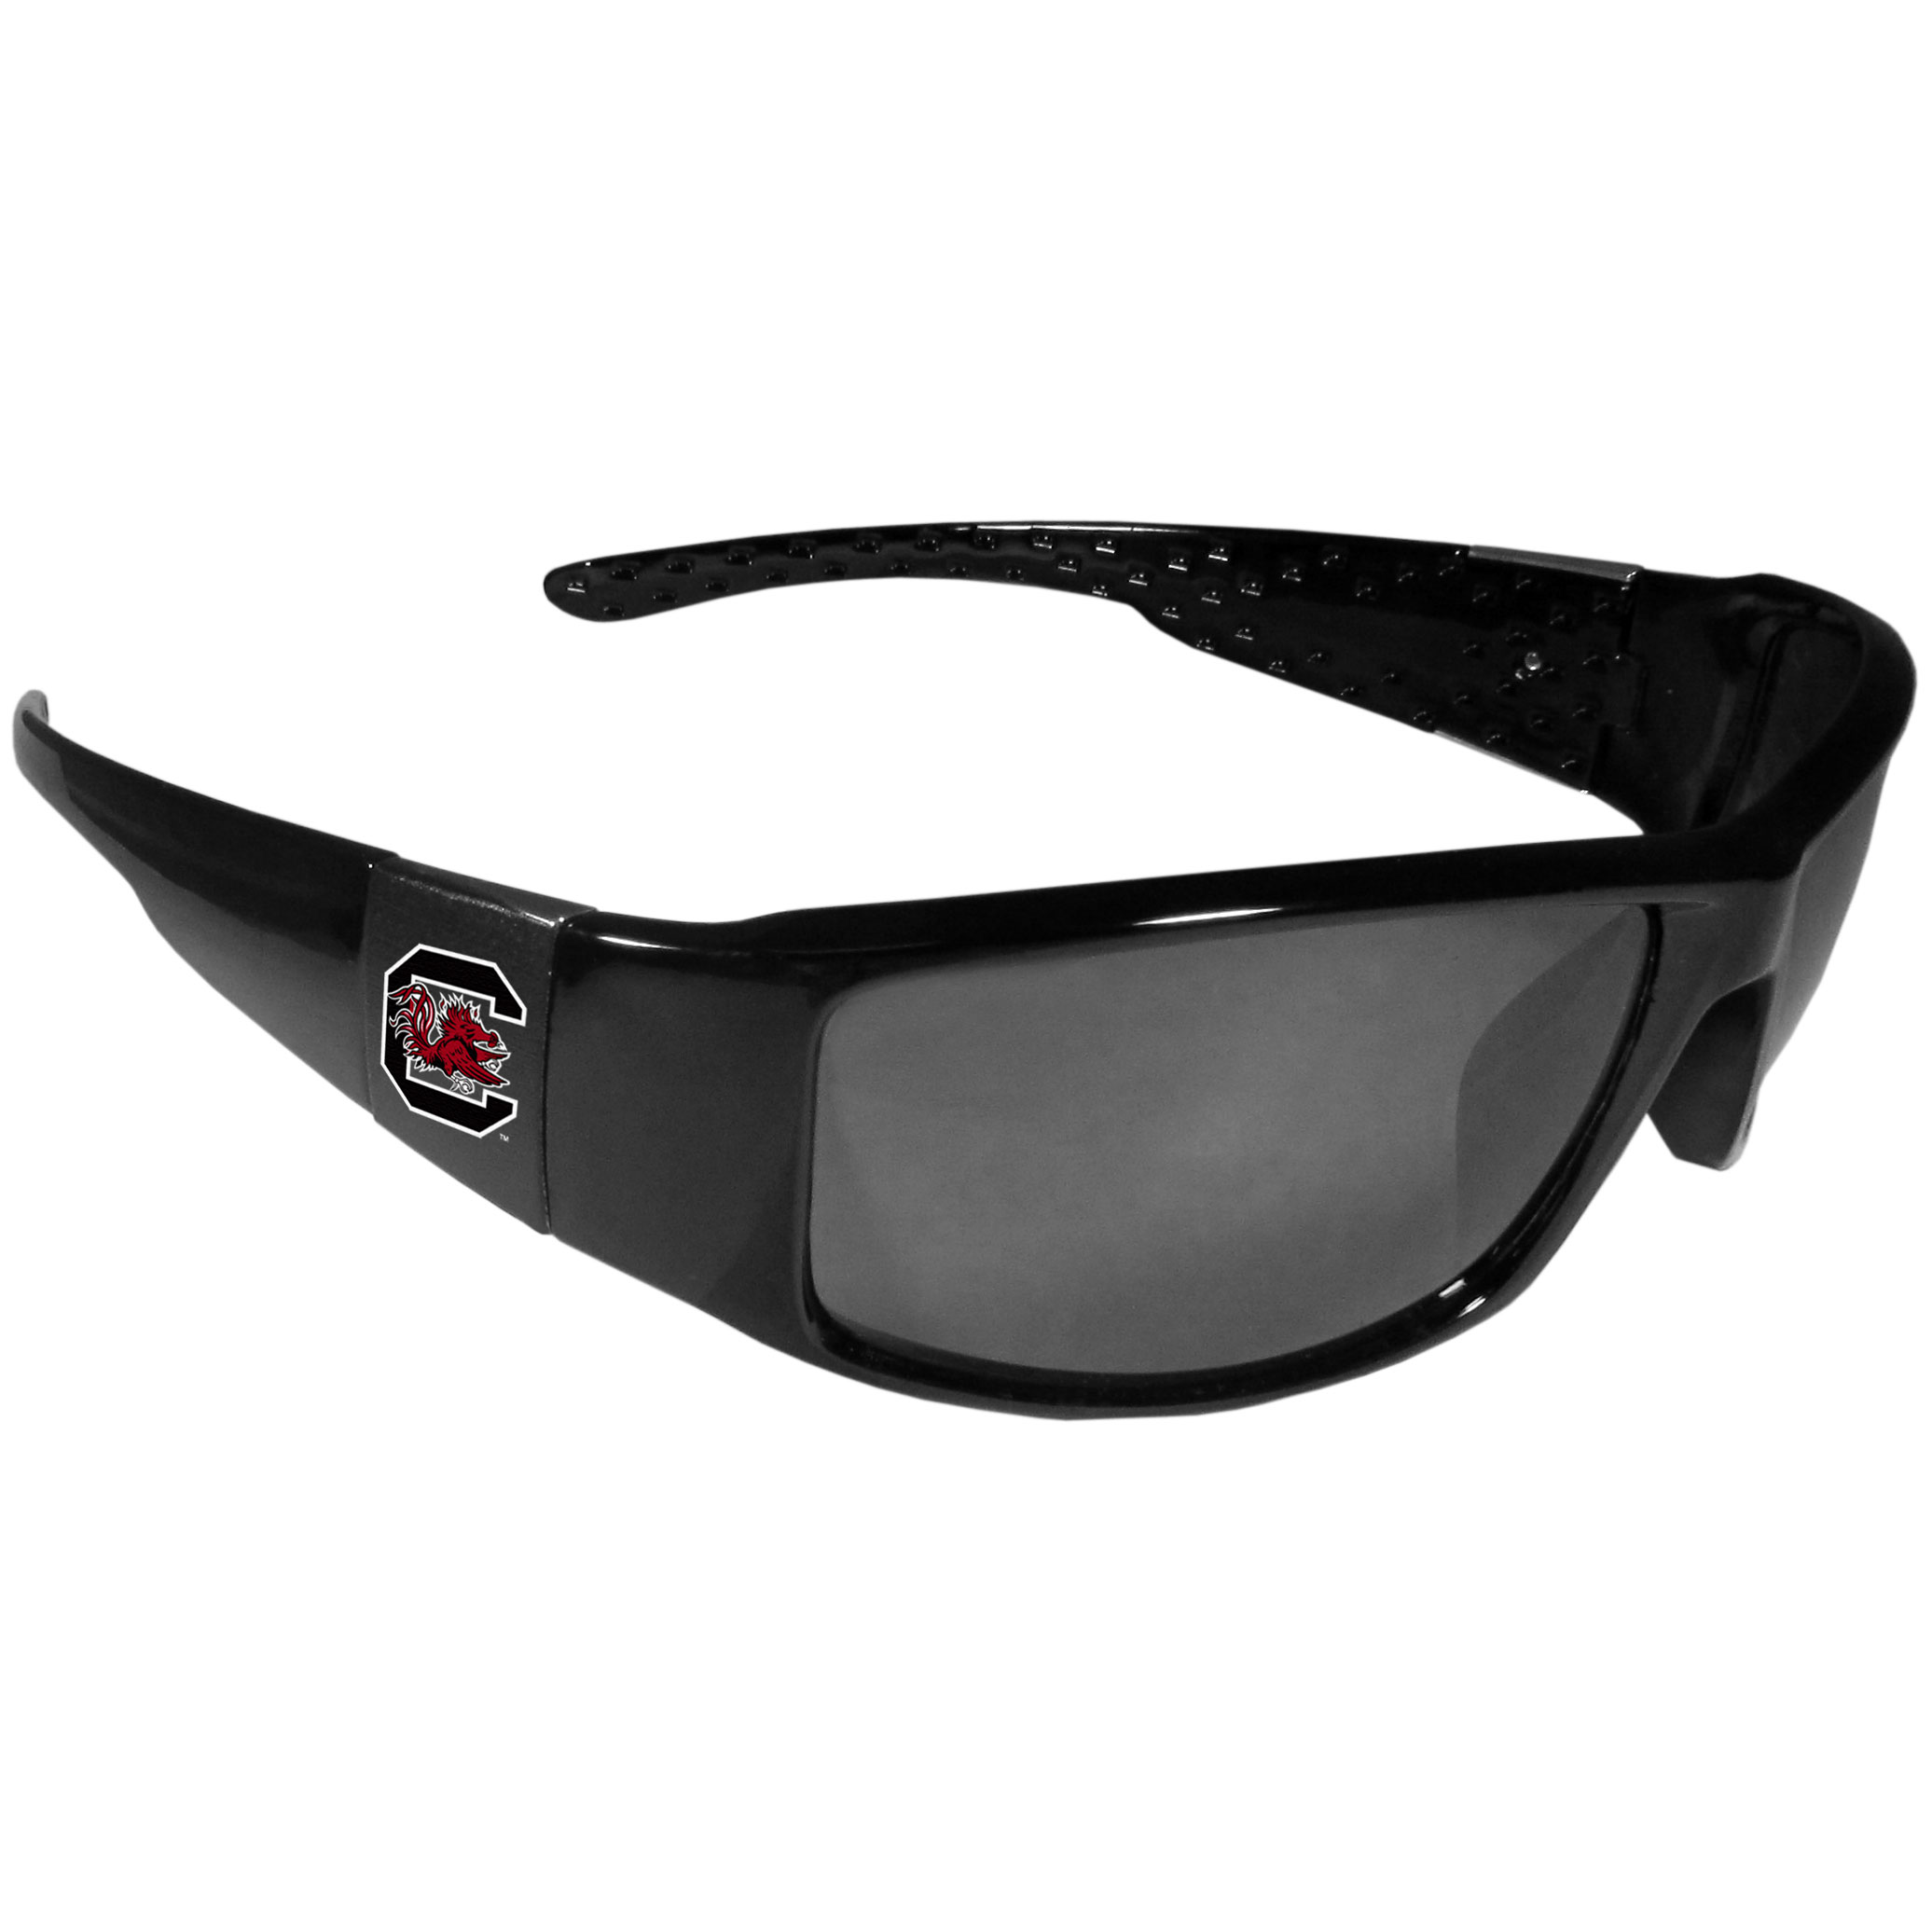 S. Carolina Gamecocks Black Wrap Sunglasses - These designer inspired frames have a sleek look in all black with  S. Carolina Gamecocks shields on each arm with a printed logo. The shades are perfect for any outdoor activity like; golfing, driving, hiking, fishing or cheering on the team at a tailgating event or at a home game day BBQ with a lens rating of 100% UVA/UVB for maximum UV protection. The high-quality frames are as durable as they are fashionable and with their classic look they are the perfect fan accessory that can be worn everyday for every occasion.